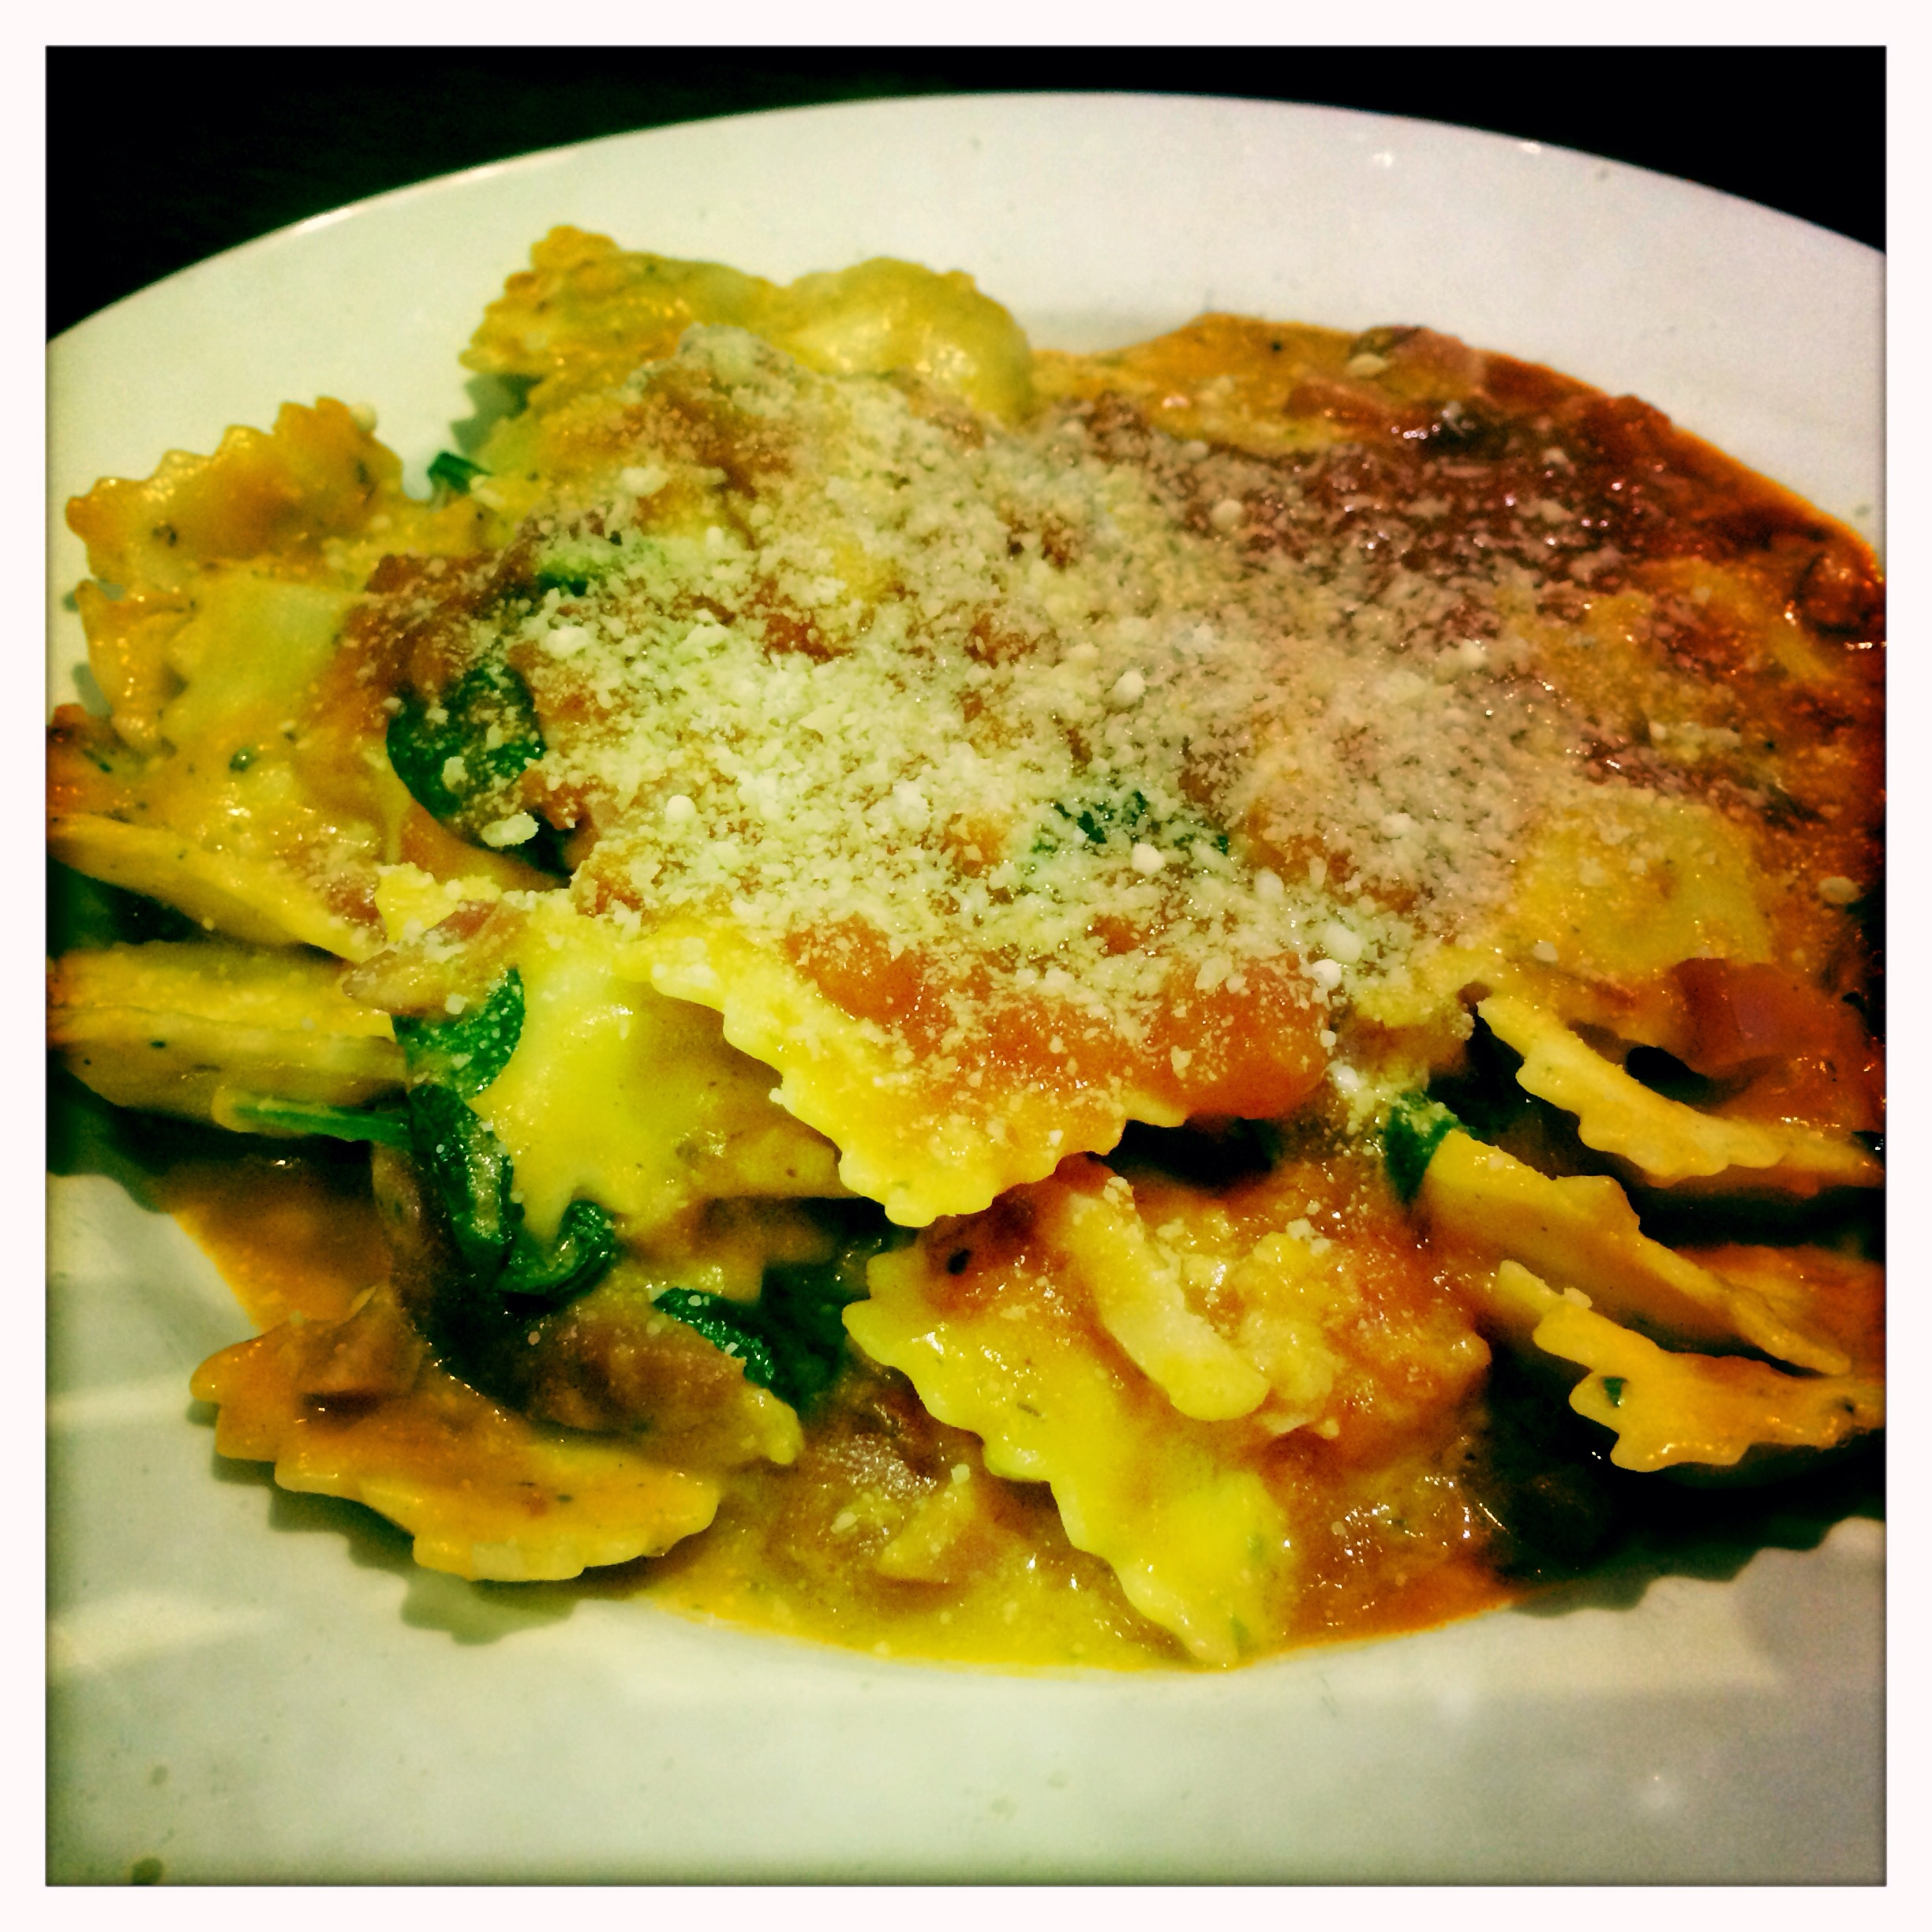 ... bacon, baby spinach and white wine in a Napoli and cream based sauce